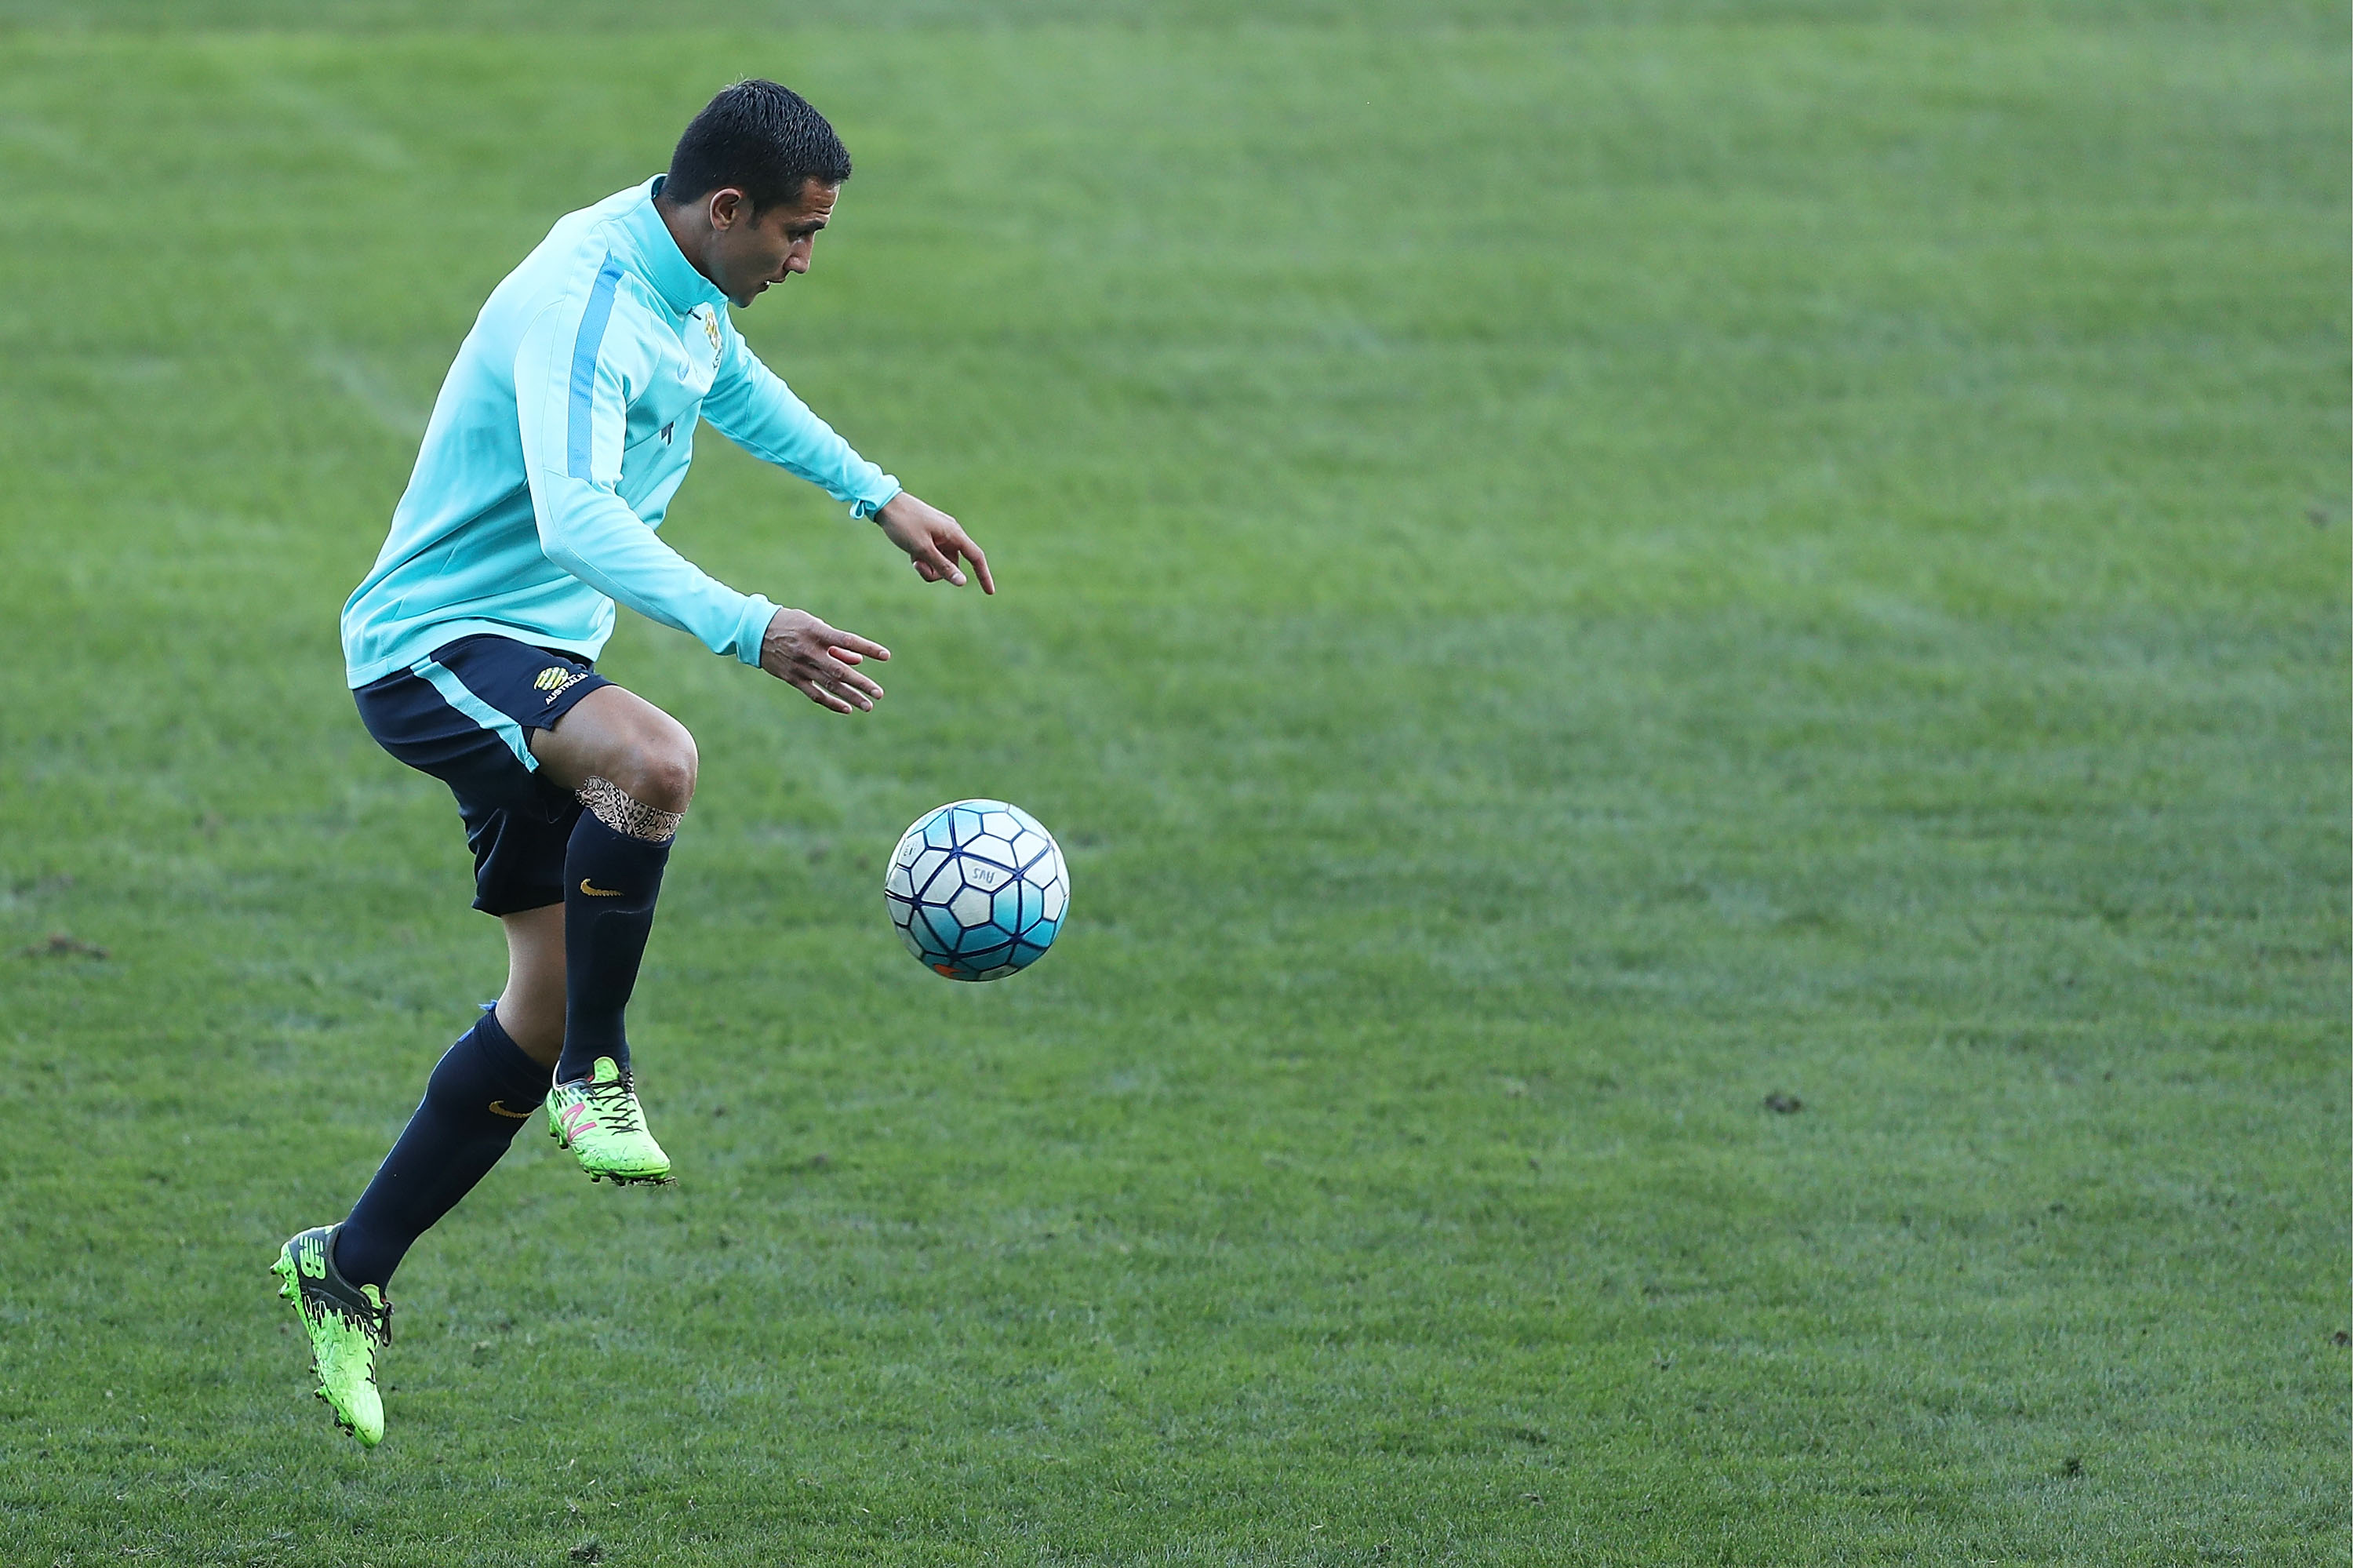 Tim Cahill training